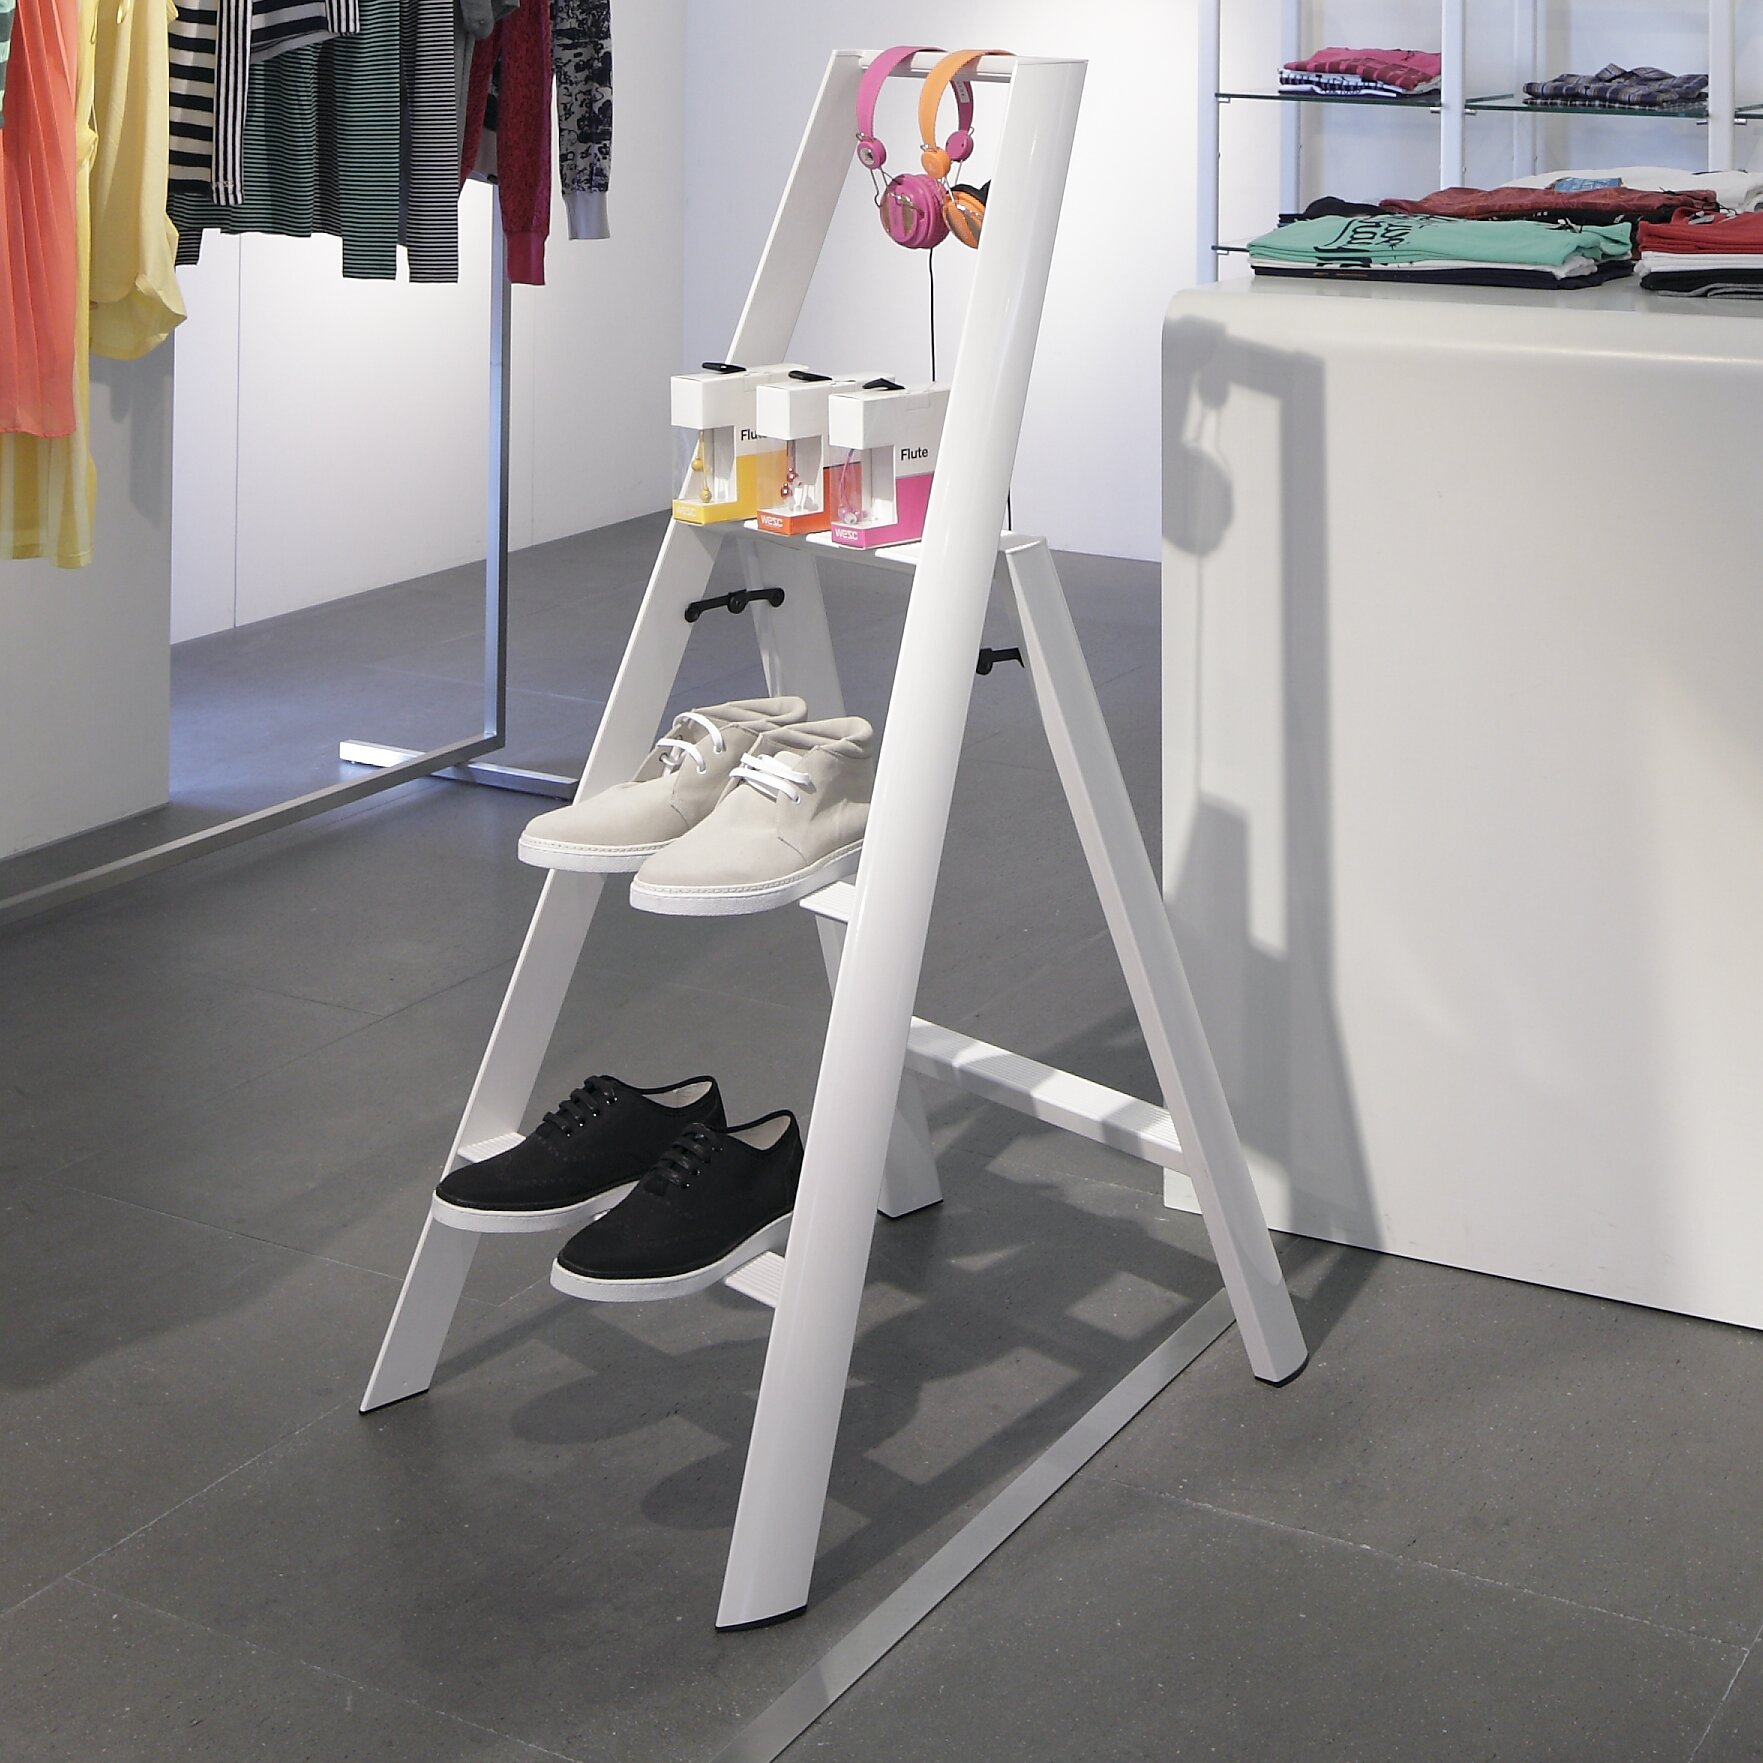 Groovy The Best Ladder Is The Hasegawa Lucano 3 Step Ladder 2017 Caraccident5 Cool Chair Designs And Ideas Caraccident5Info